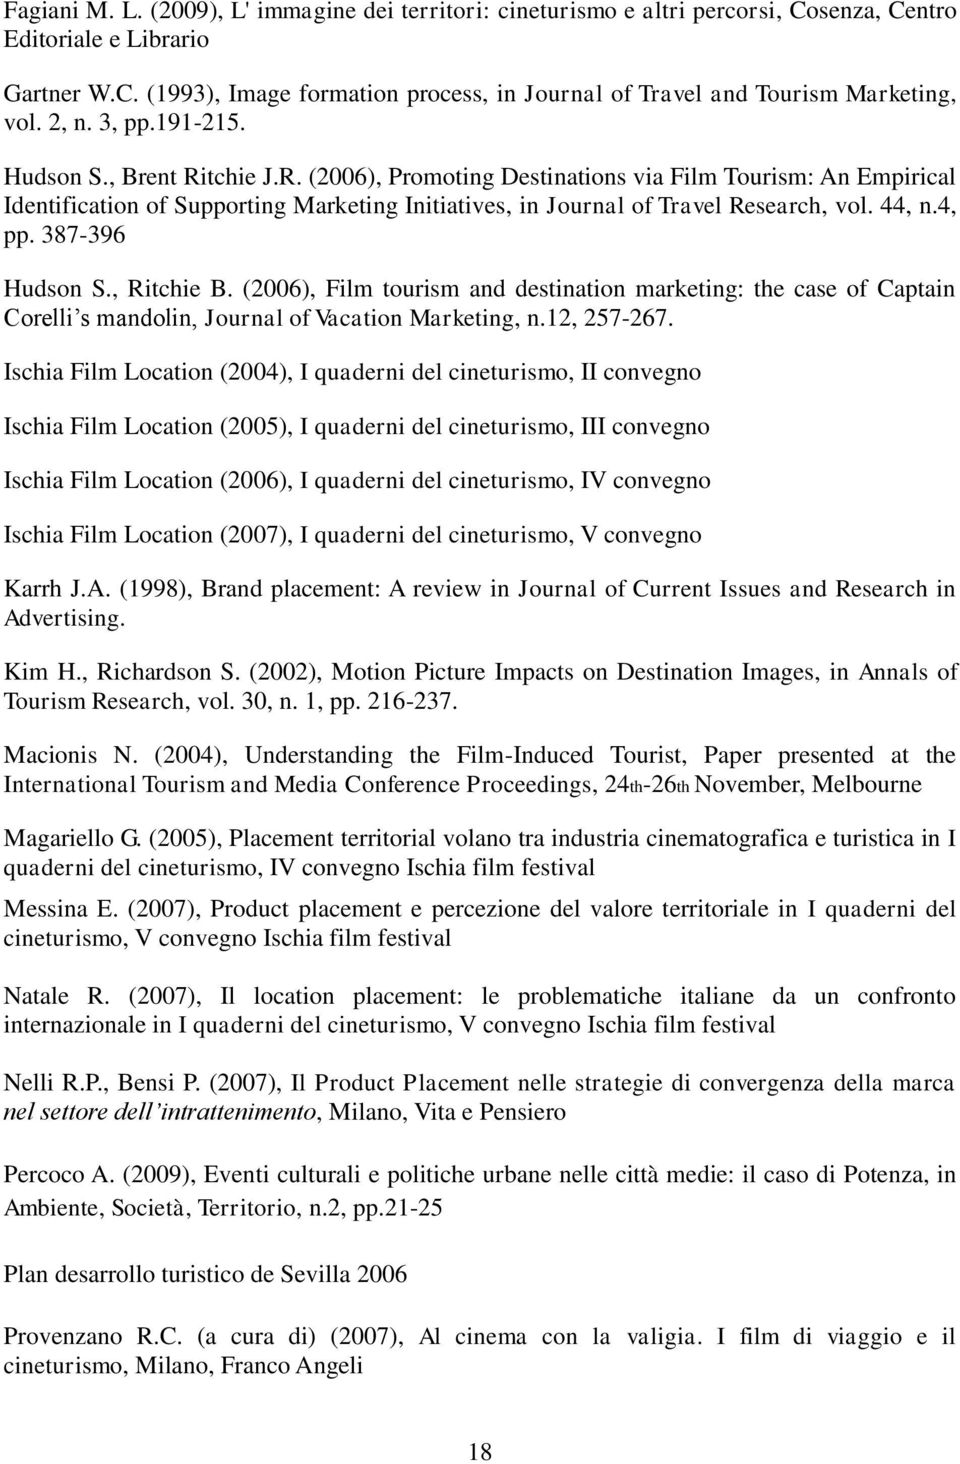 44, n.4, pp. 387-396 Hudson S., Ritchie B. (2006), Film tourism and destination marketing: the case of Captain Corelli s mandolin, Journal of Vacation Marketing, n.12, 257-267.